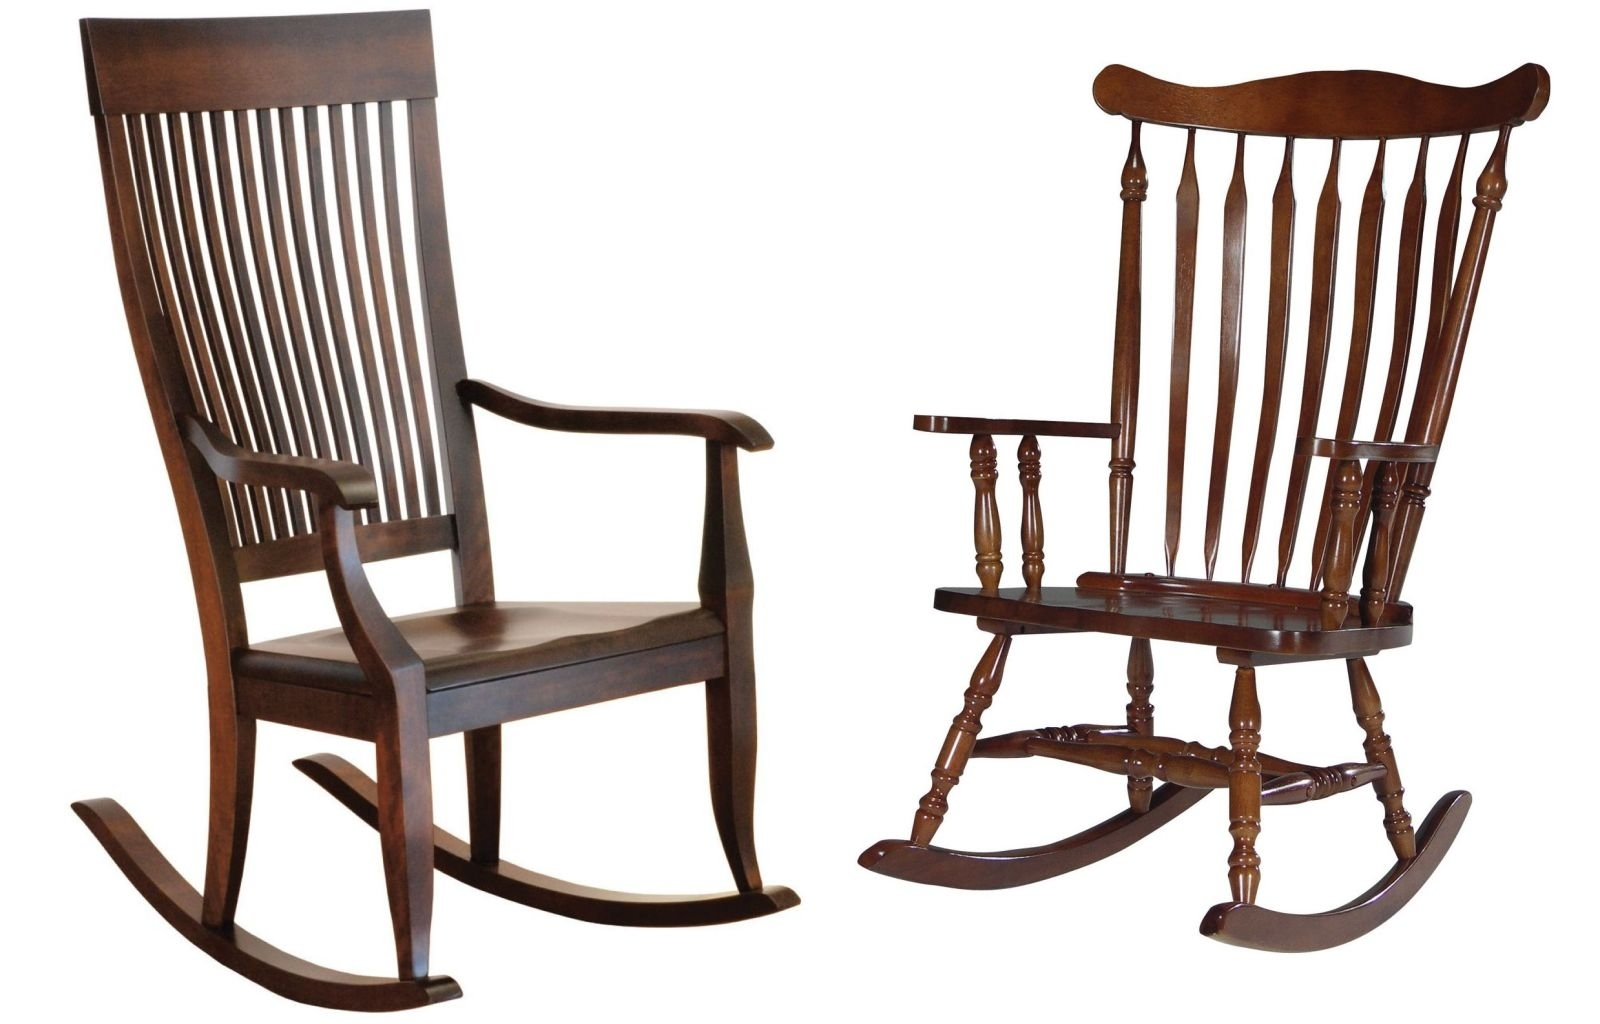 Chair | Outside Rocking Chairs For Sale Good Rocking Chairs Off Regarding Old Fashioned Rocking Chairs (#4 of 15)